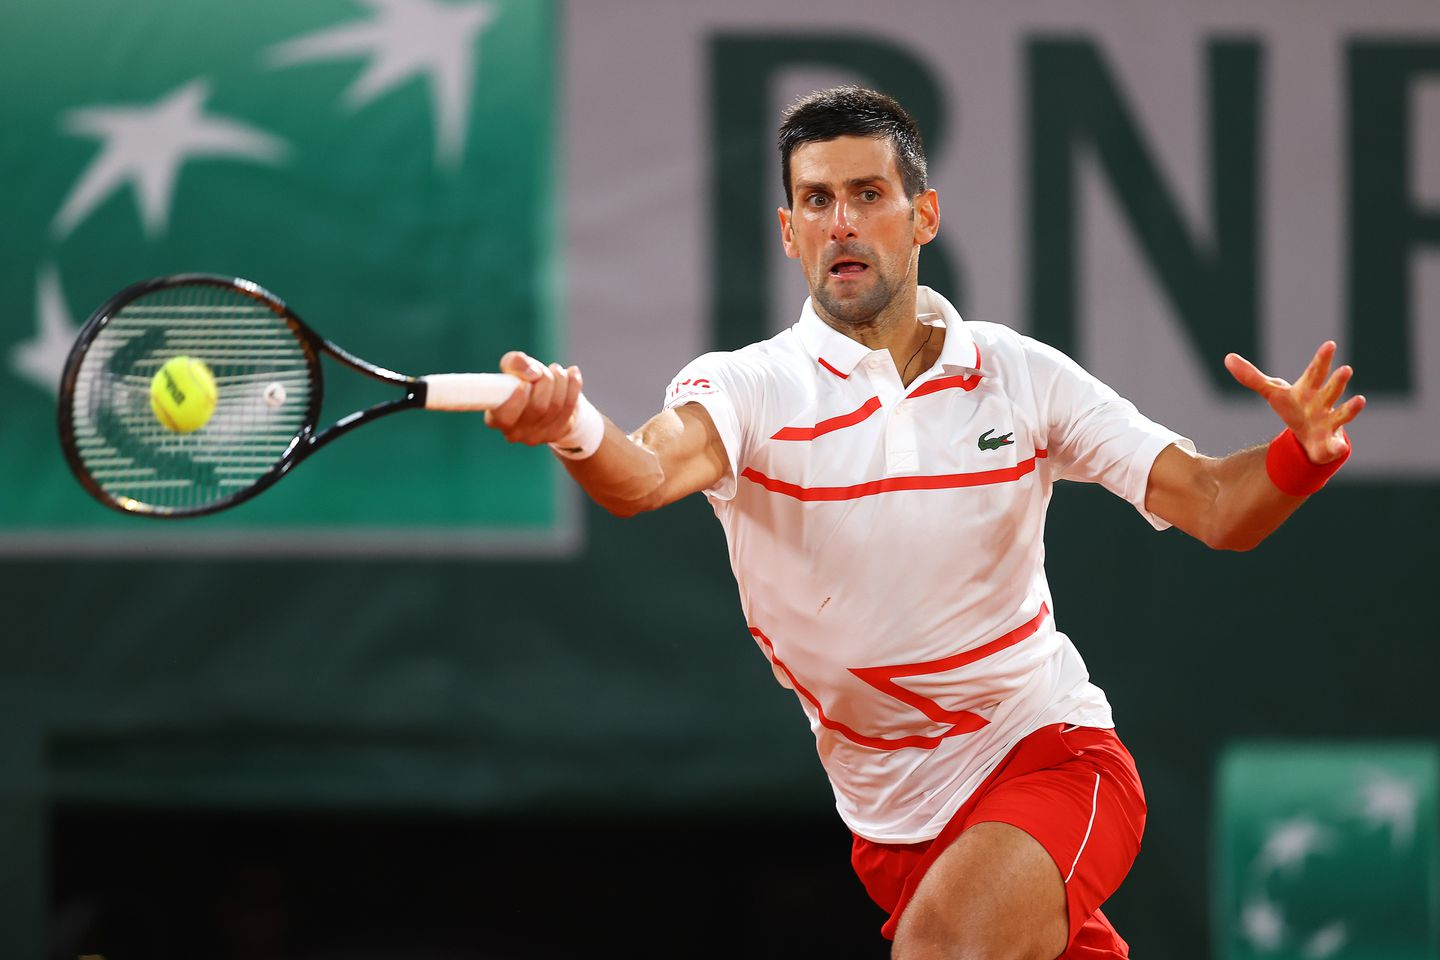 Little Drama This Time For Novak Djokovic In First Round Victory At Roland Garros The Boston Globe